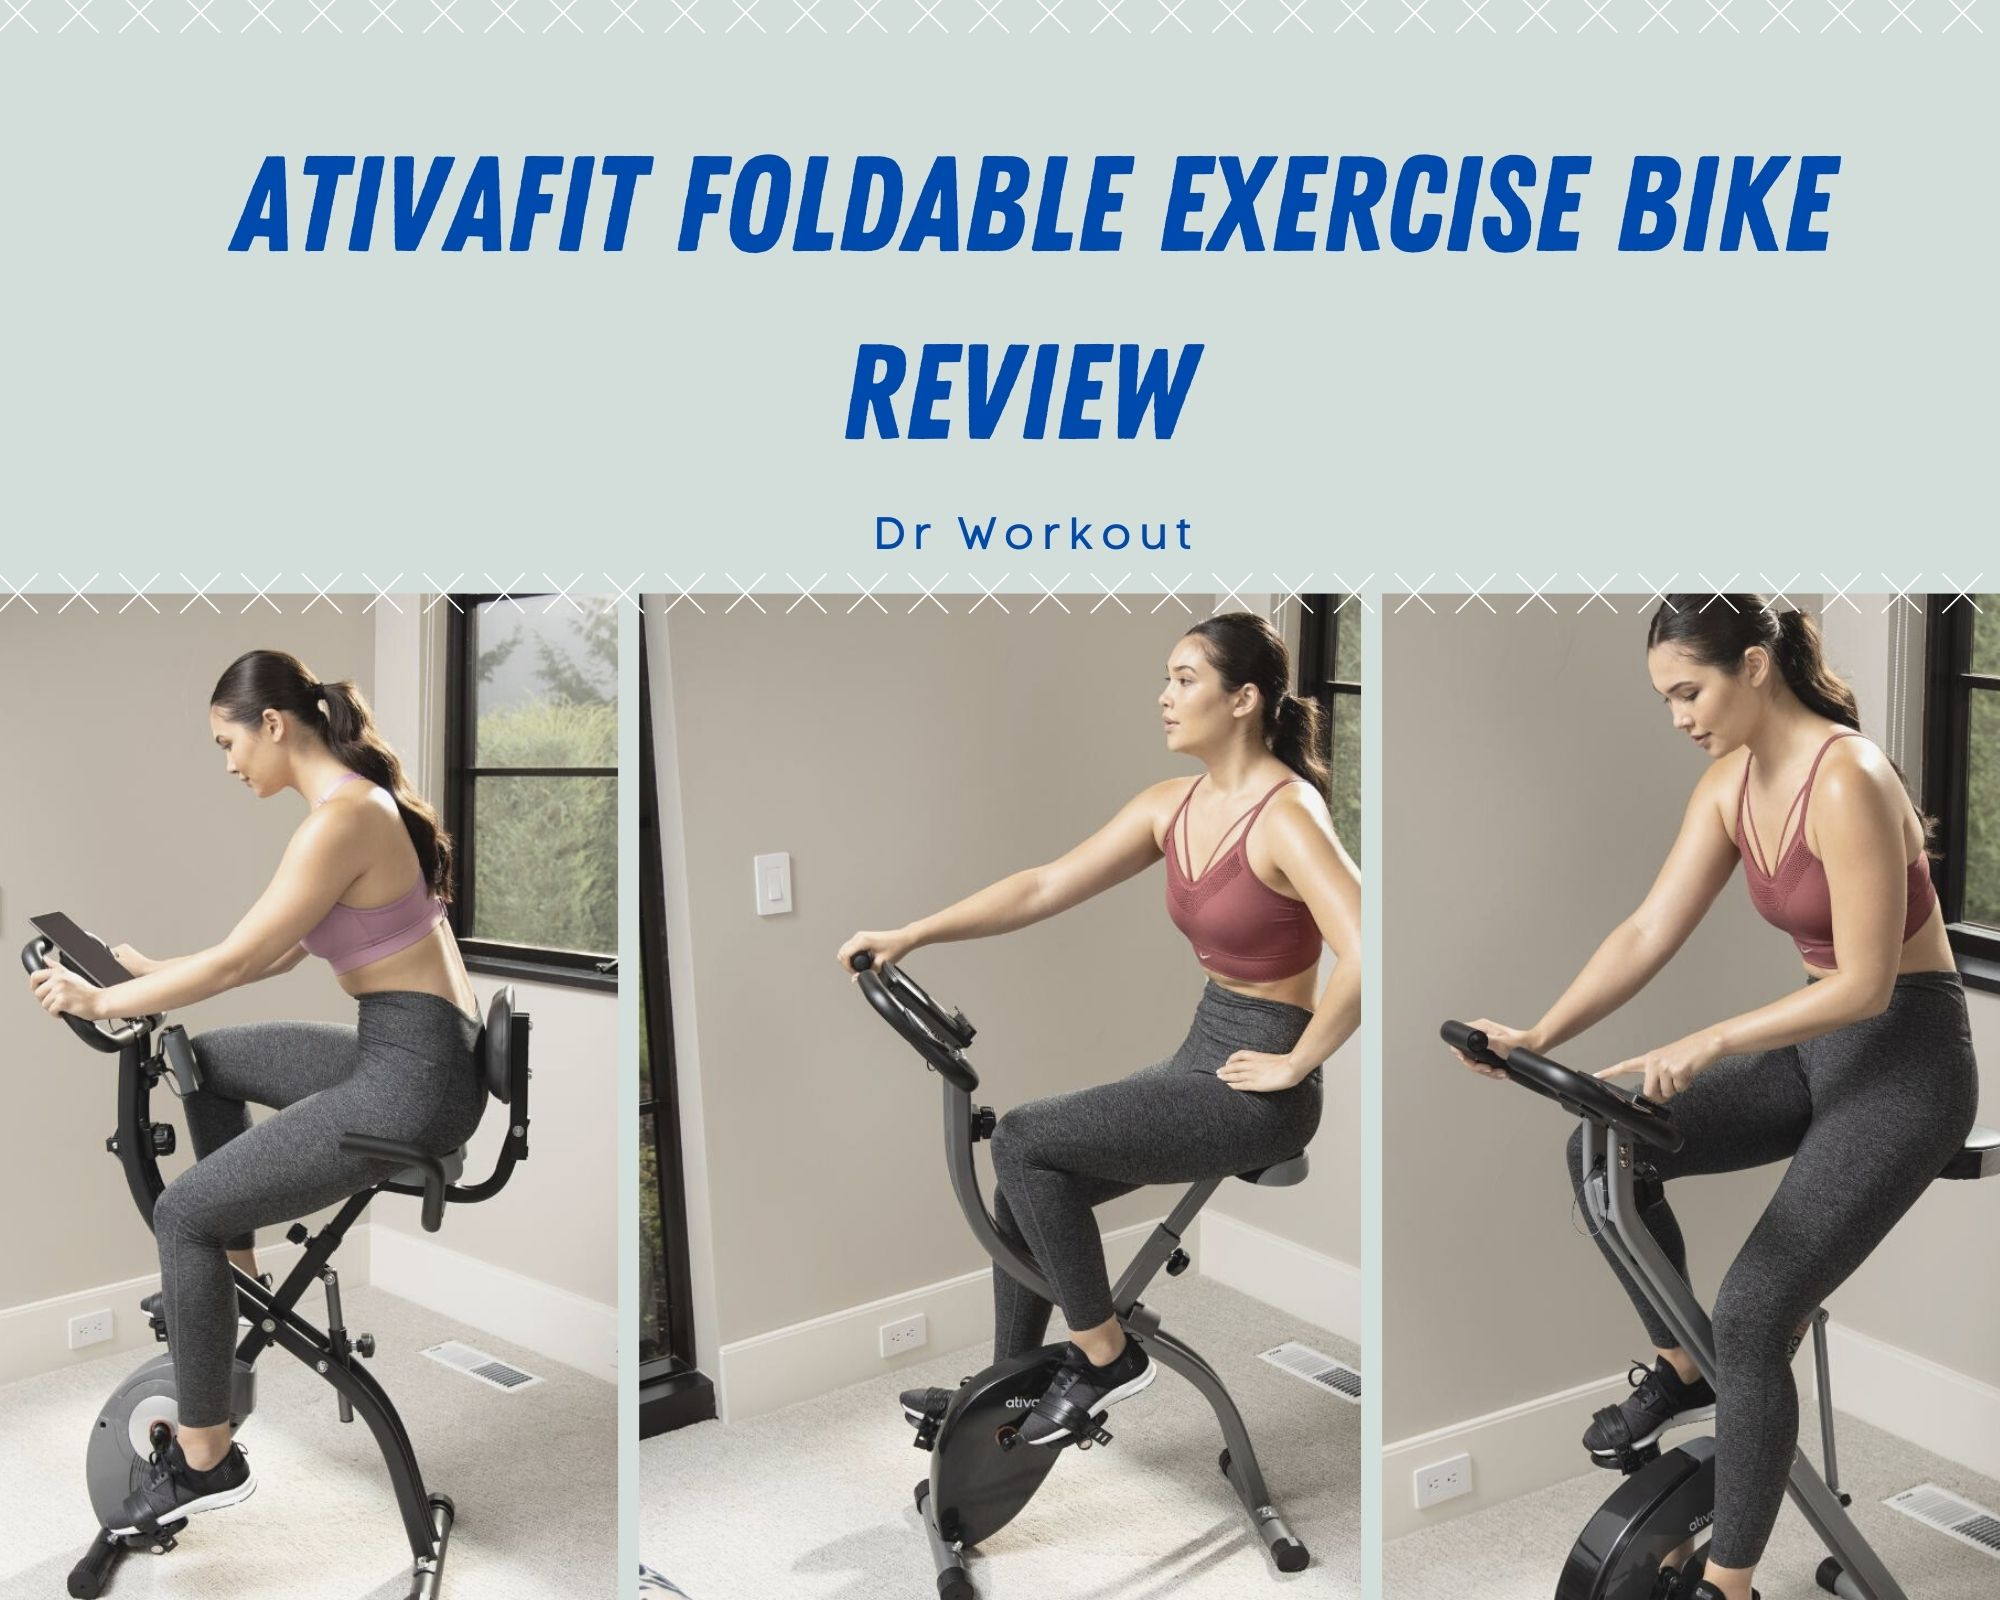 AtivaFit Foldable Exercise Bike Review